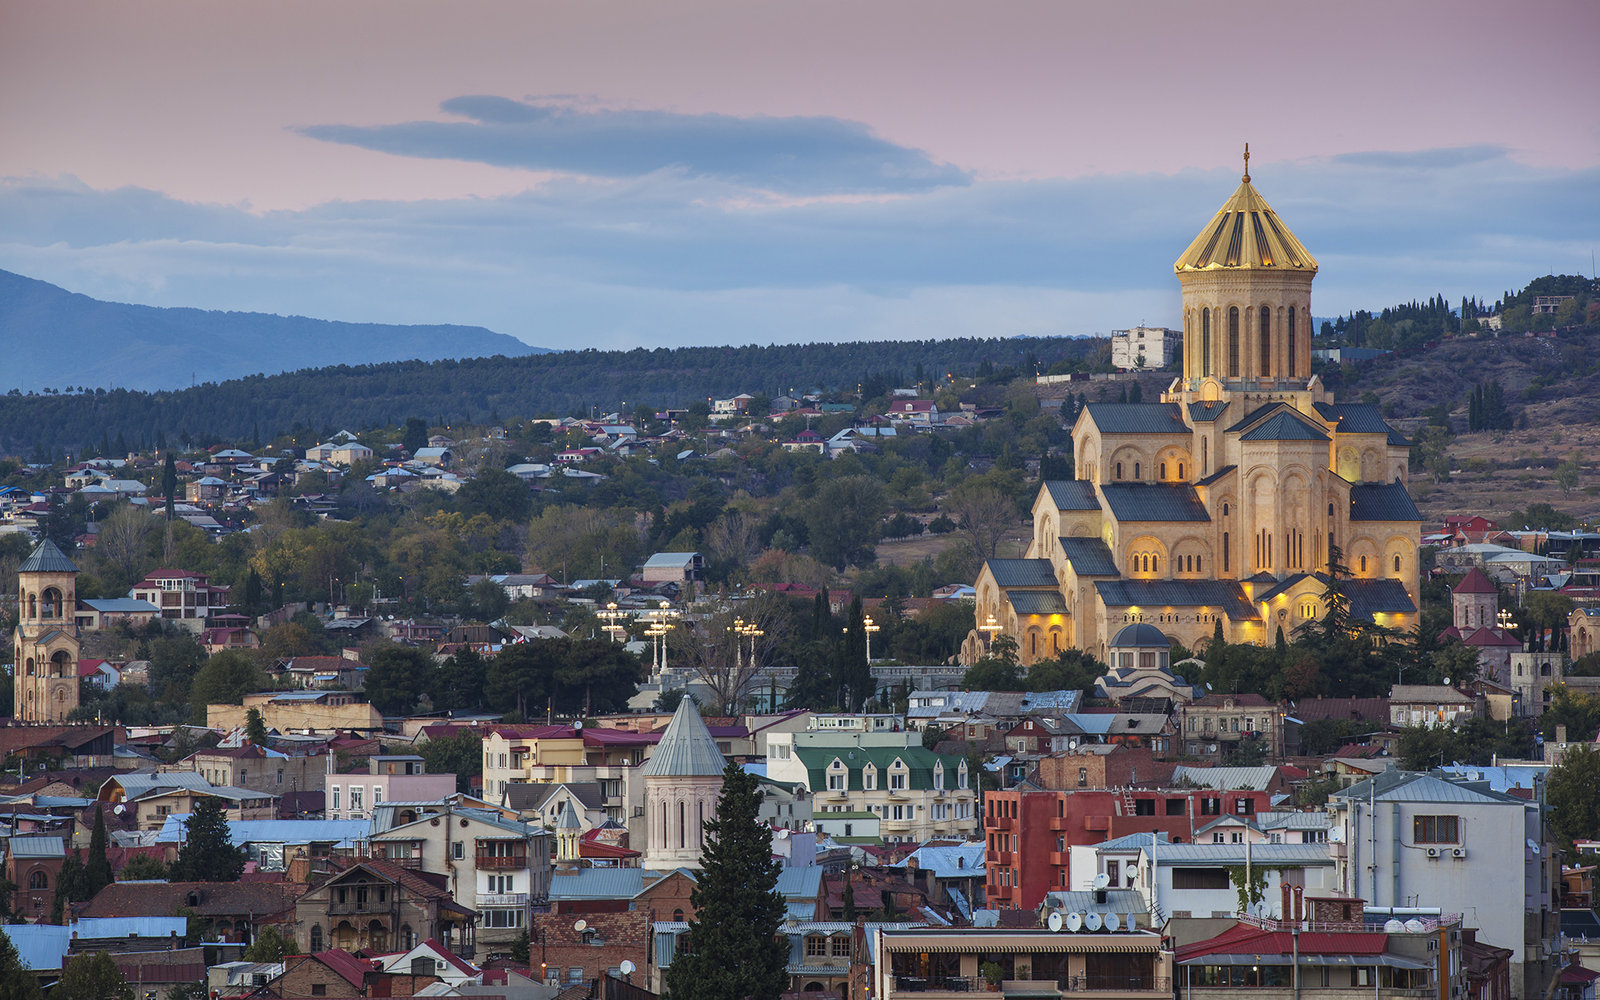 Georgia, Tbilisi, City and Tsminda Sameba Cathedral at dusk